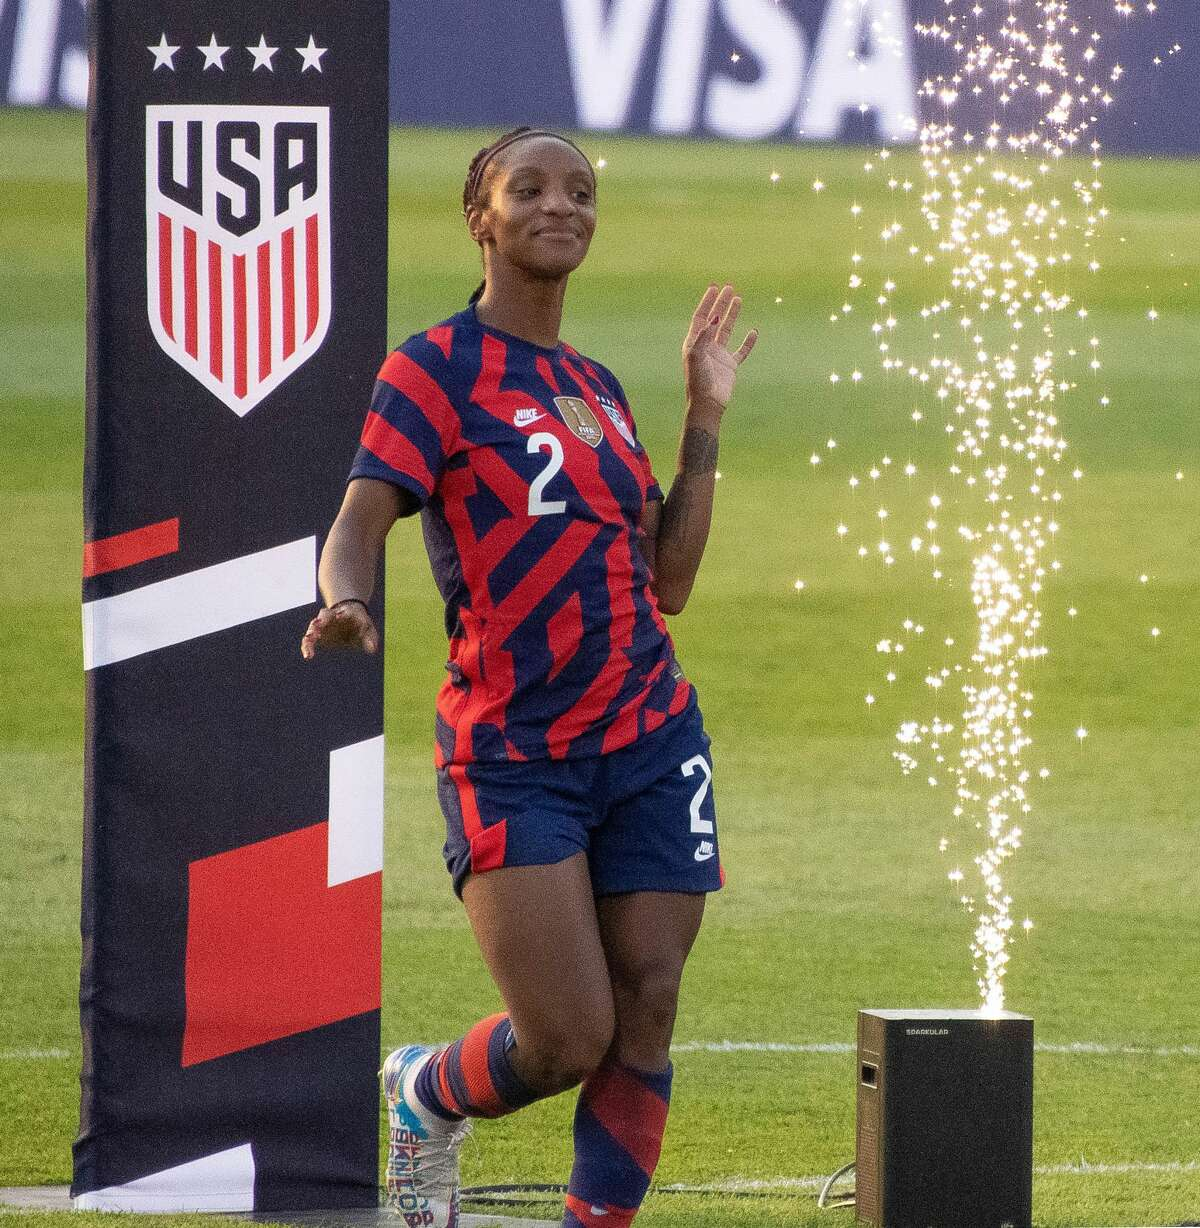 Crystal Dunn of the US Women's Soccer National Team during a Send-Off ceremony at Pratt & Whitney Stadium in East Hartford, Conn. after a match against Mexico on Monday, July 5, 2021. The U.S. won 4-0 over Mexico. (Joyce Bassett / Special to the Times Union)